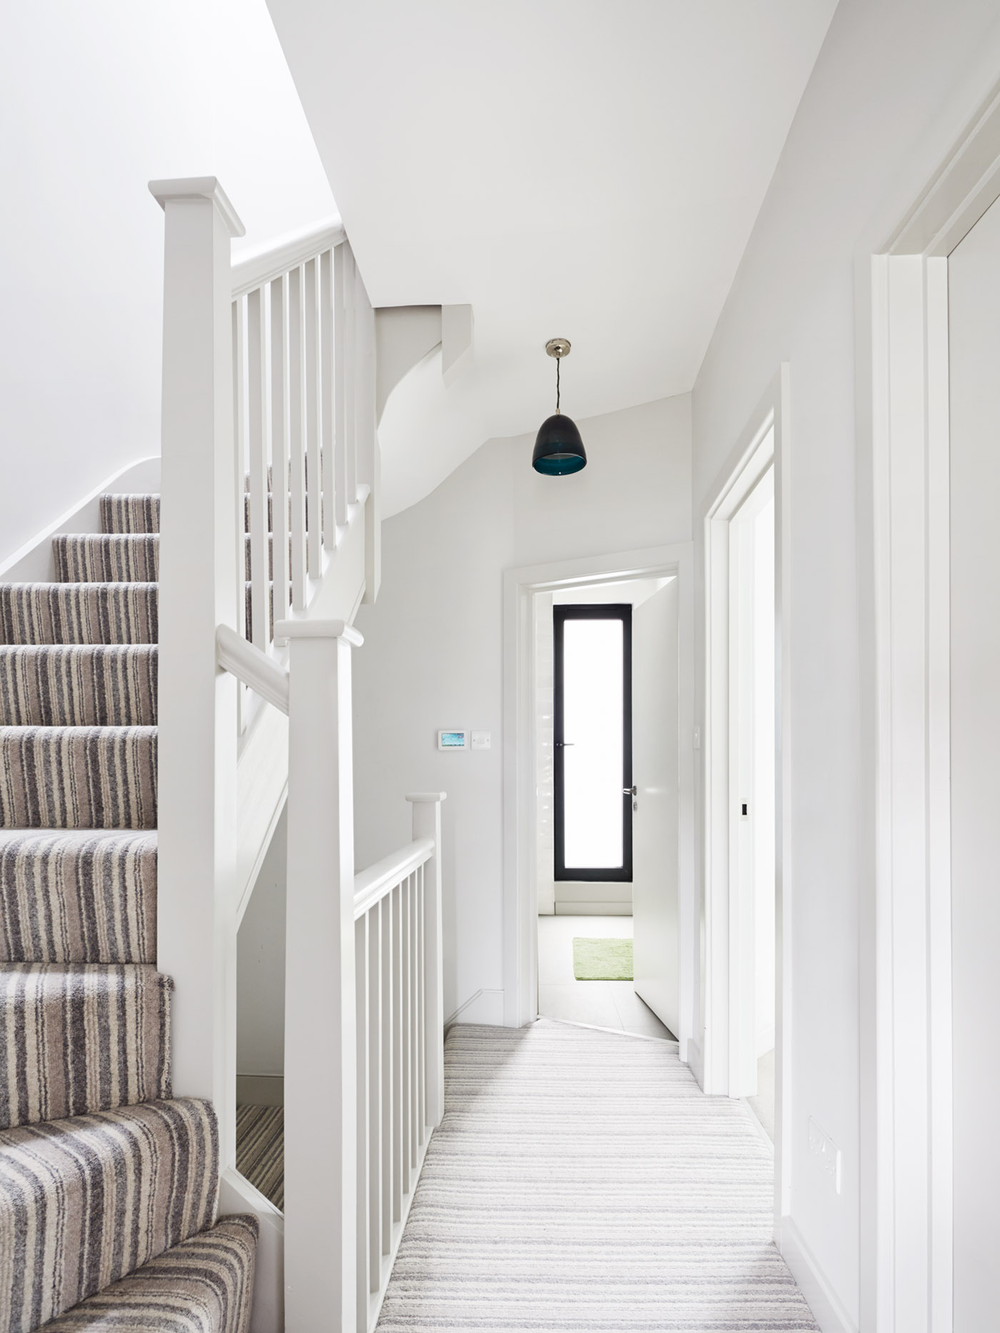 House C Staircase, Architecture, Interior design, Bonds Green, London, Extension, Refurbishment, Striped Carpet, Minimal, Clean, Modern, Elegant, White Interior, Steel Window, Duration